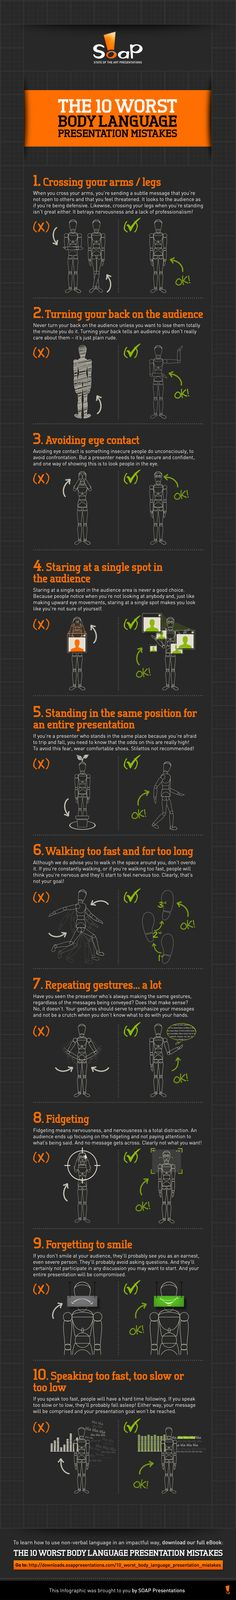 """The 10 worst body language #presentation mistakes"" #training #HR #HRM"